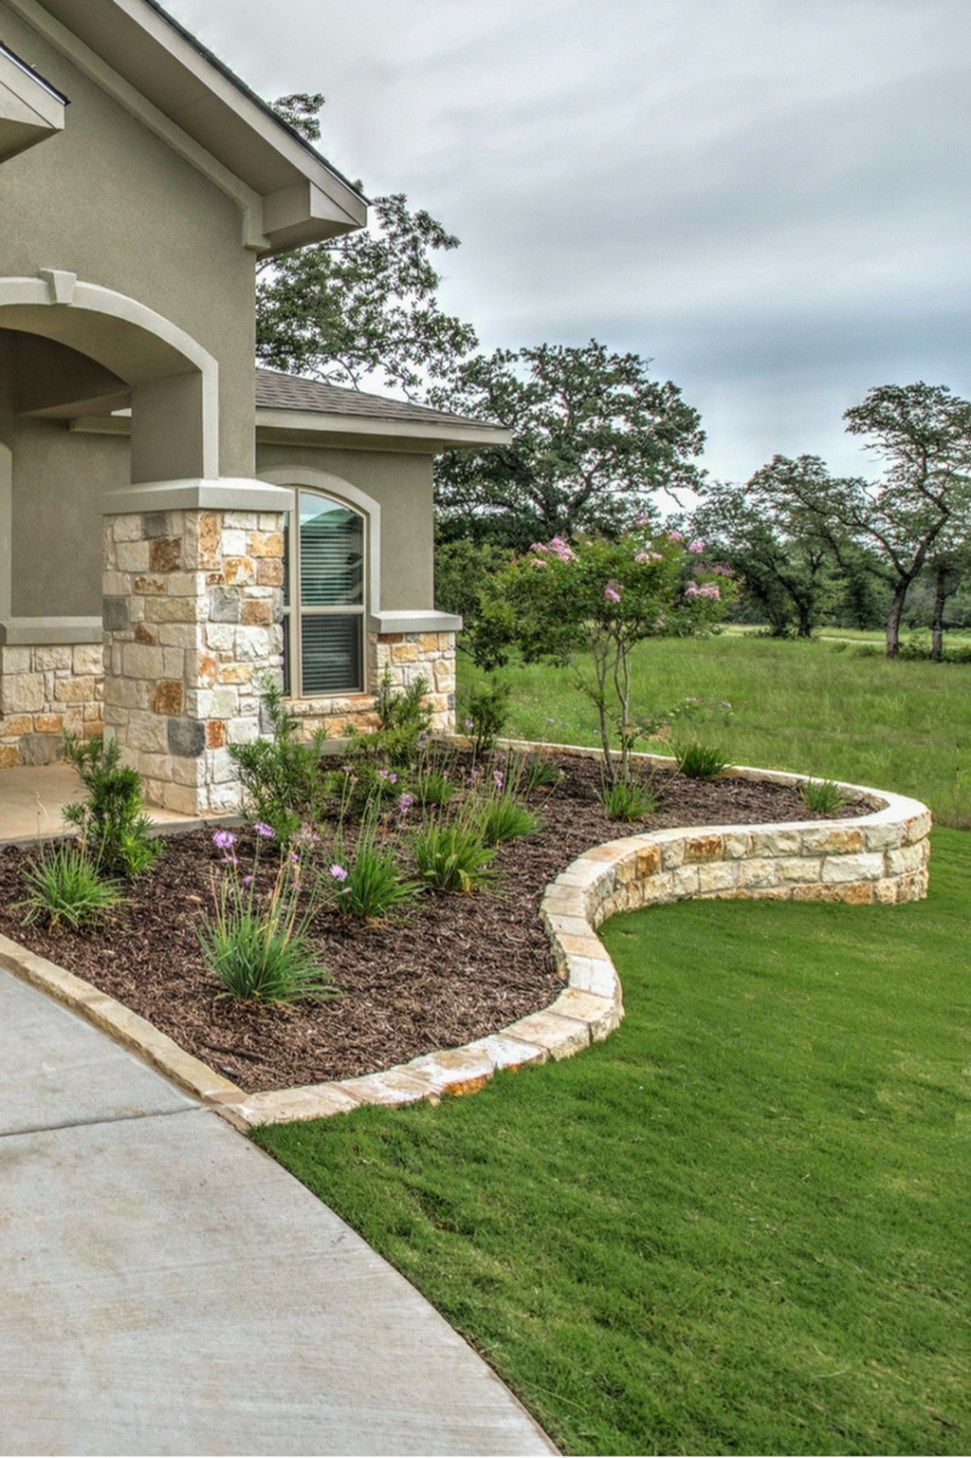 Gorgeous Front Yard Retaining Wall Ideas Perfect For Your Front House 16 Arka Bahce Peyzaj Duzenlemesi Arka Bahceler Arka Bahce Peyzaj Tasarimi Landscaping ideas for house front